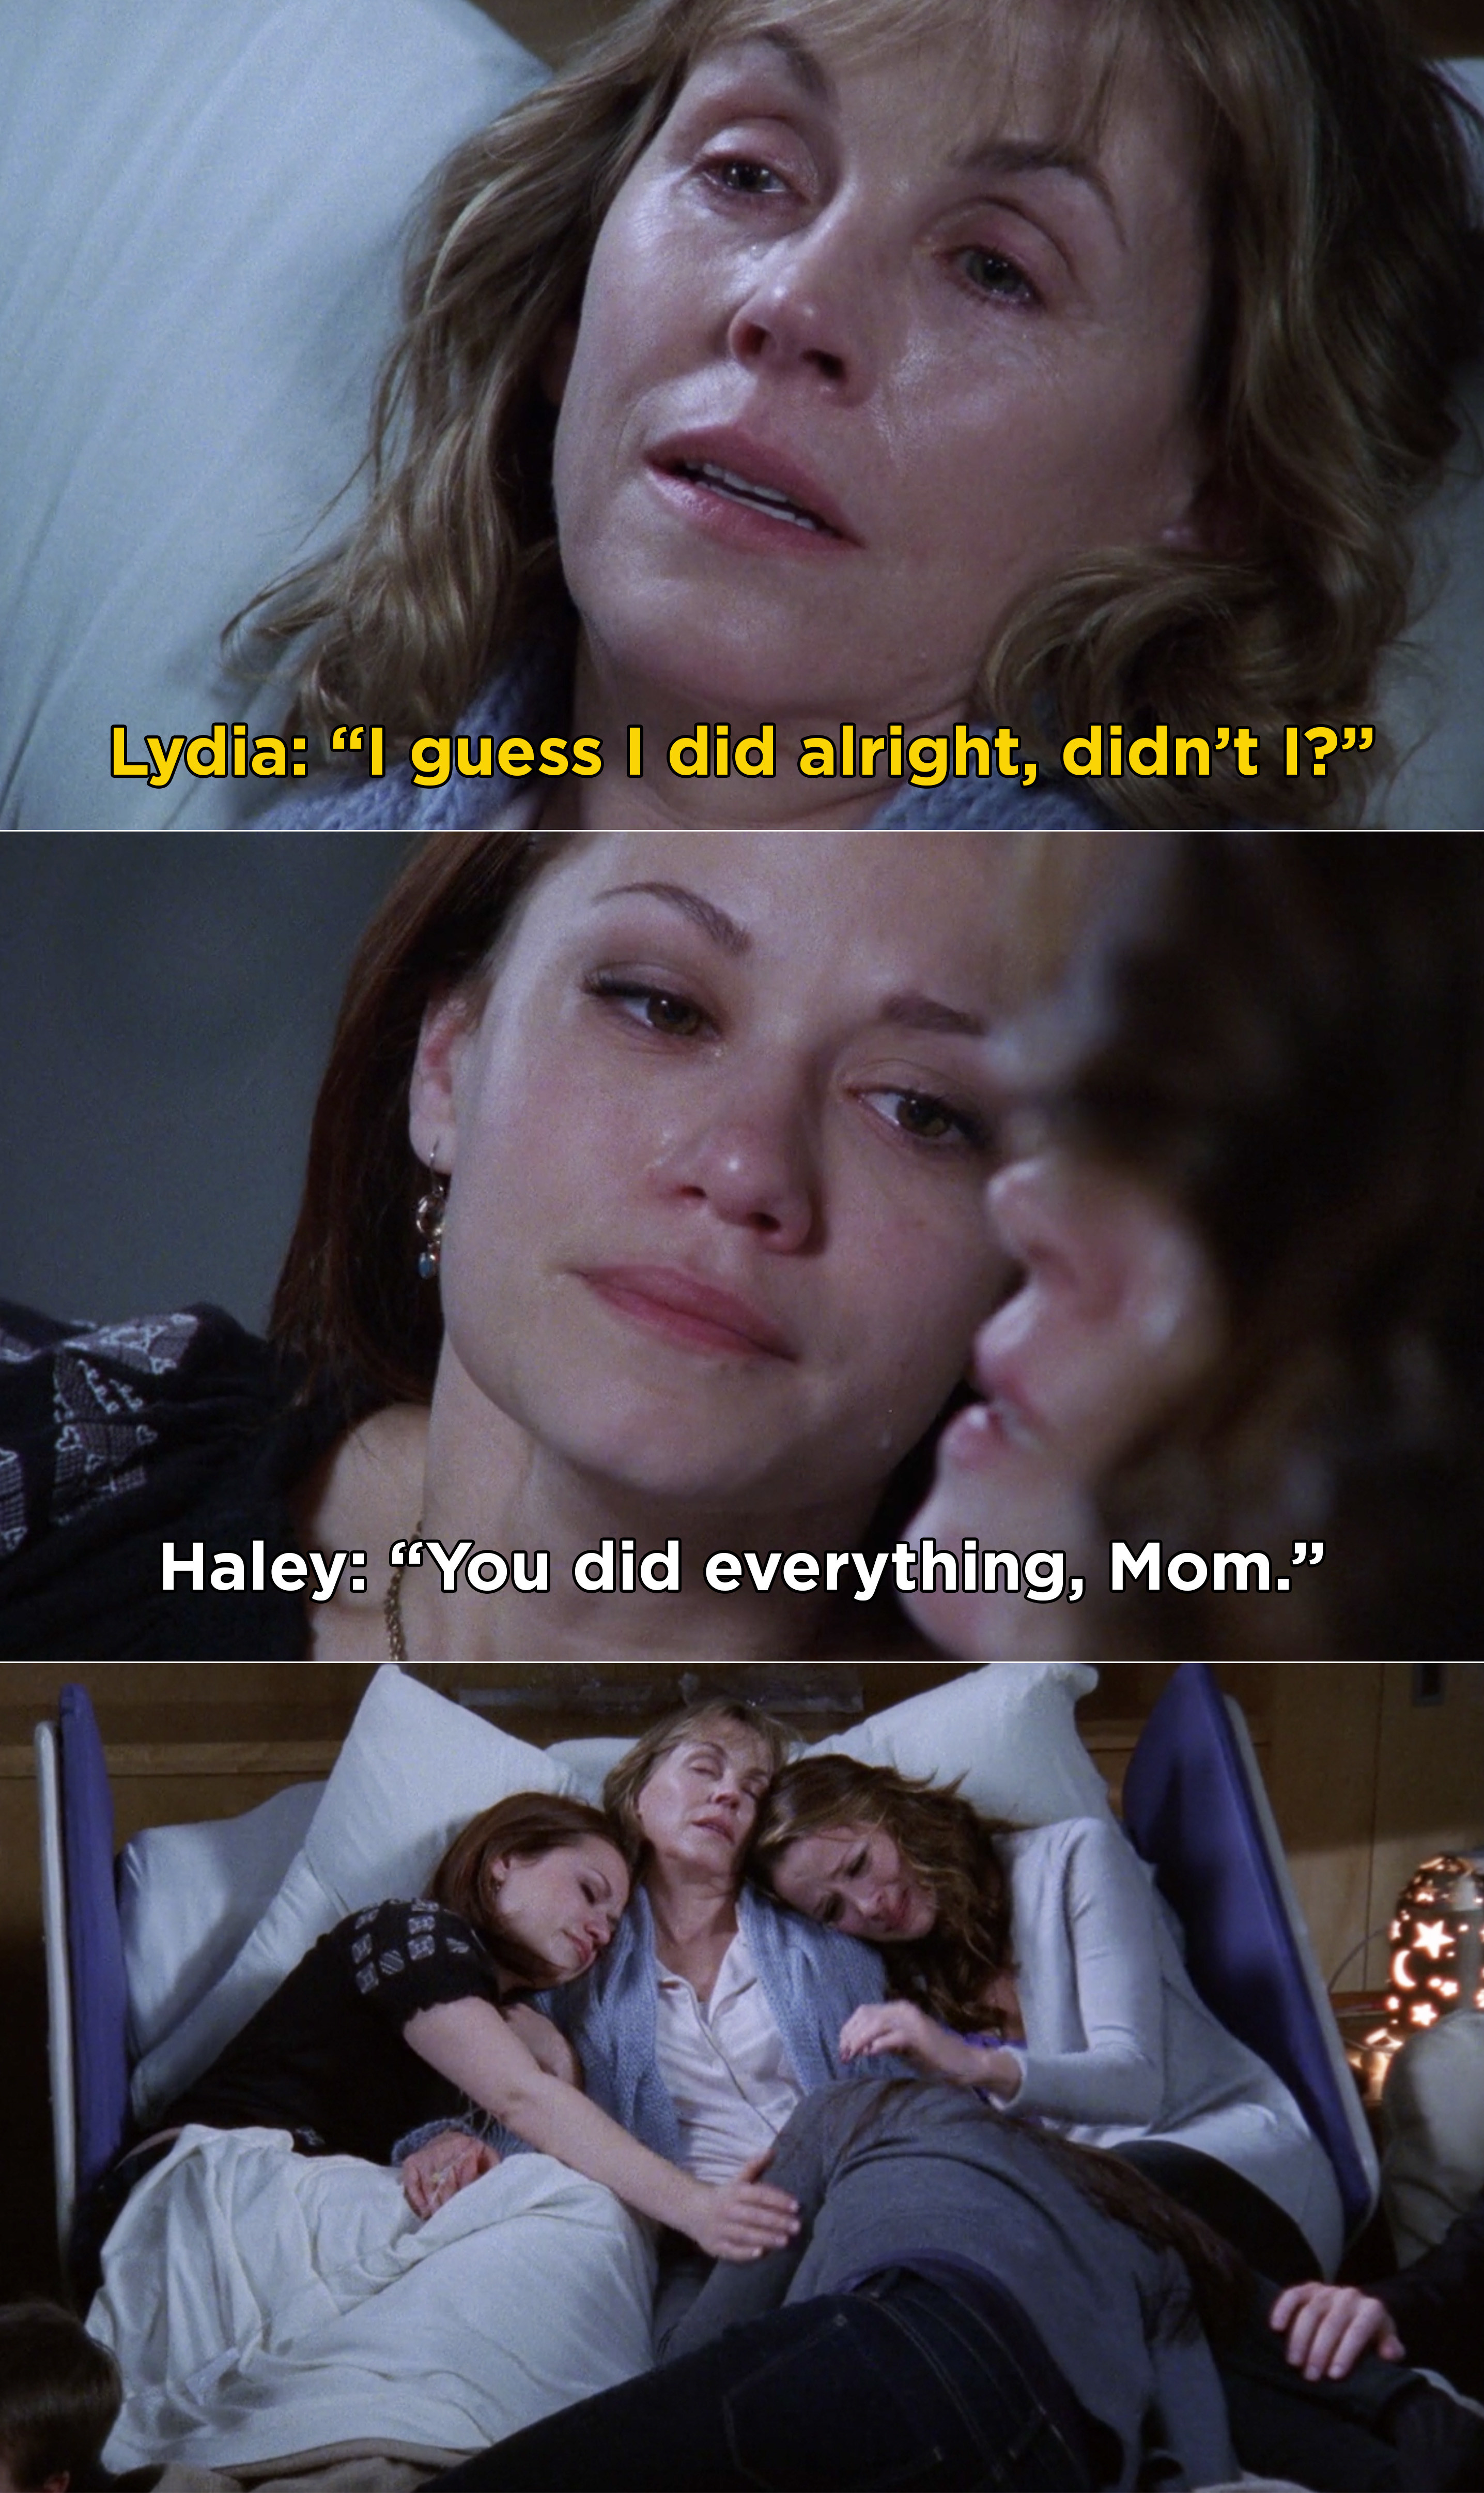 Lydia asking if she did alright, and Haley saying that she did everything